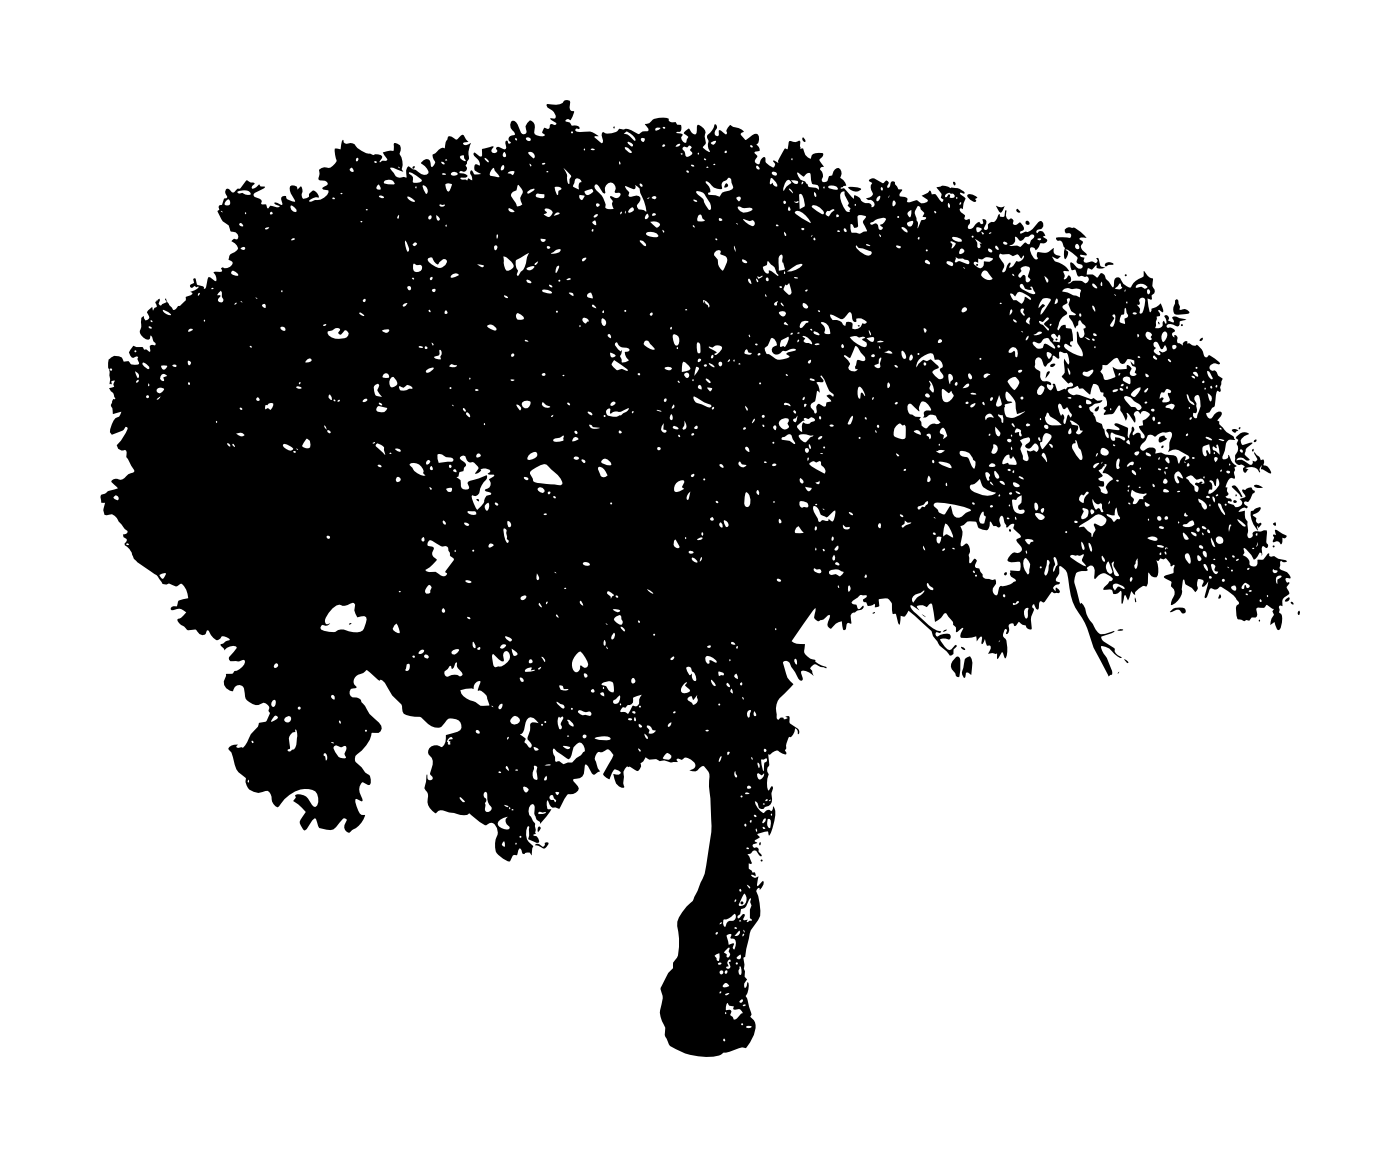 Tree graphic png